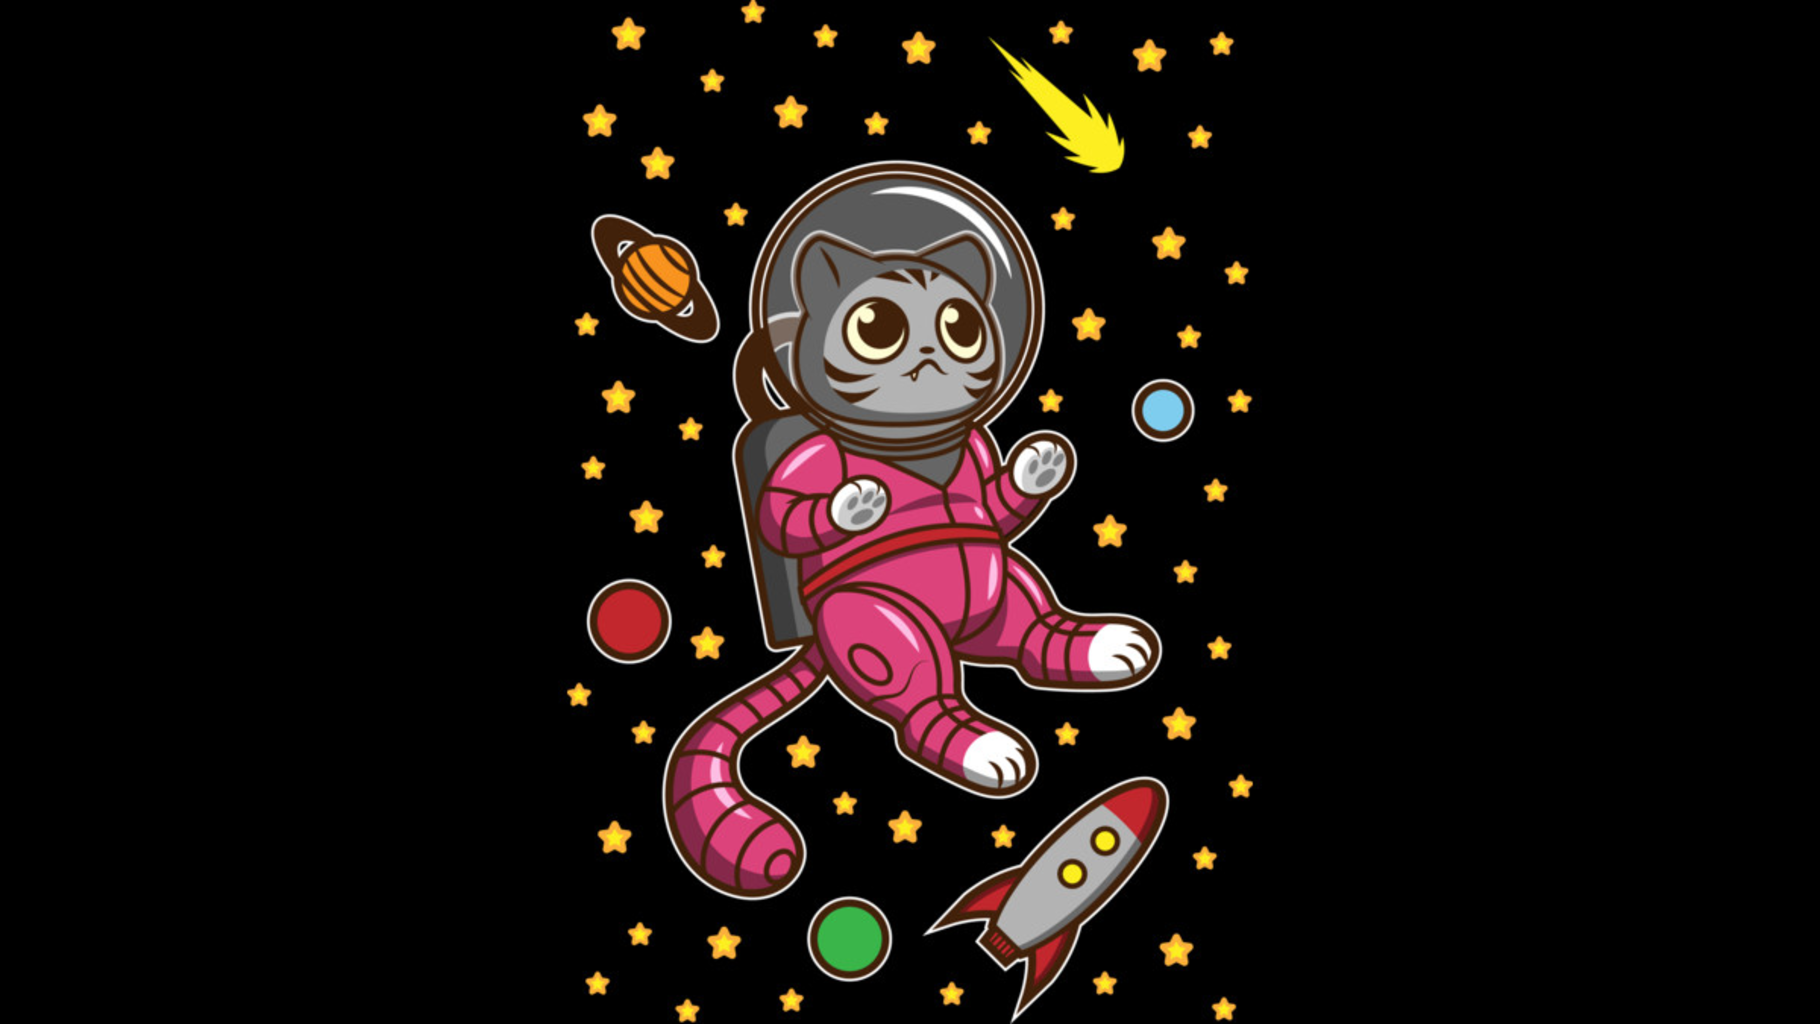 Design by Humans: Kitty Cat in Space